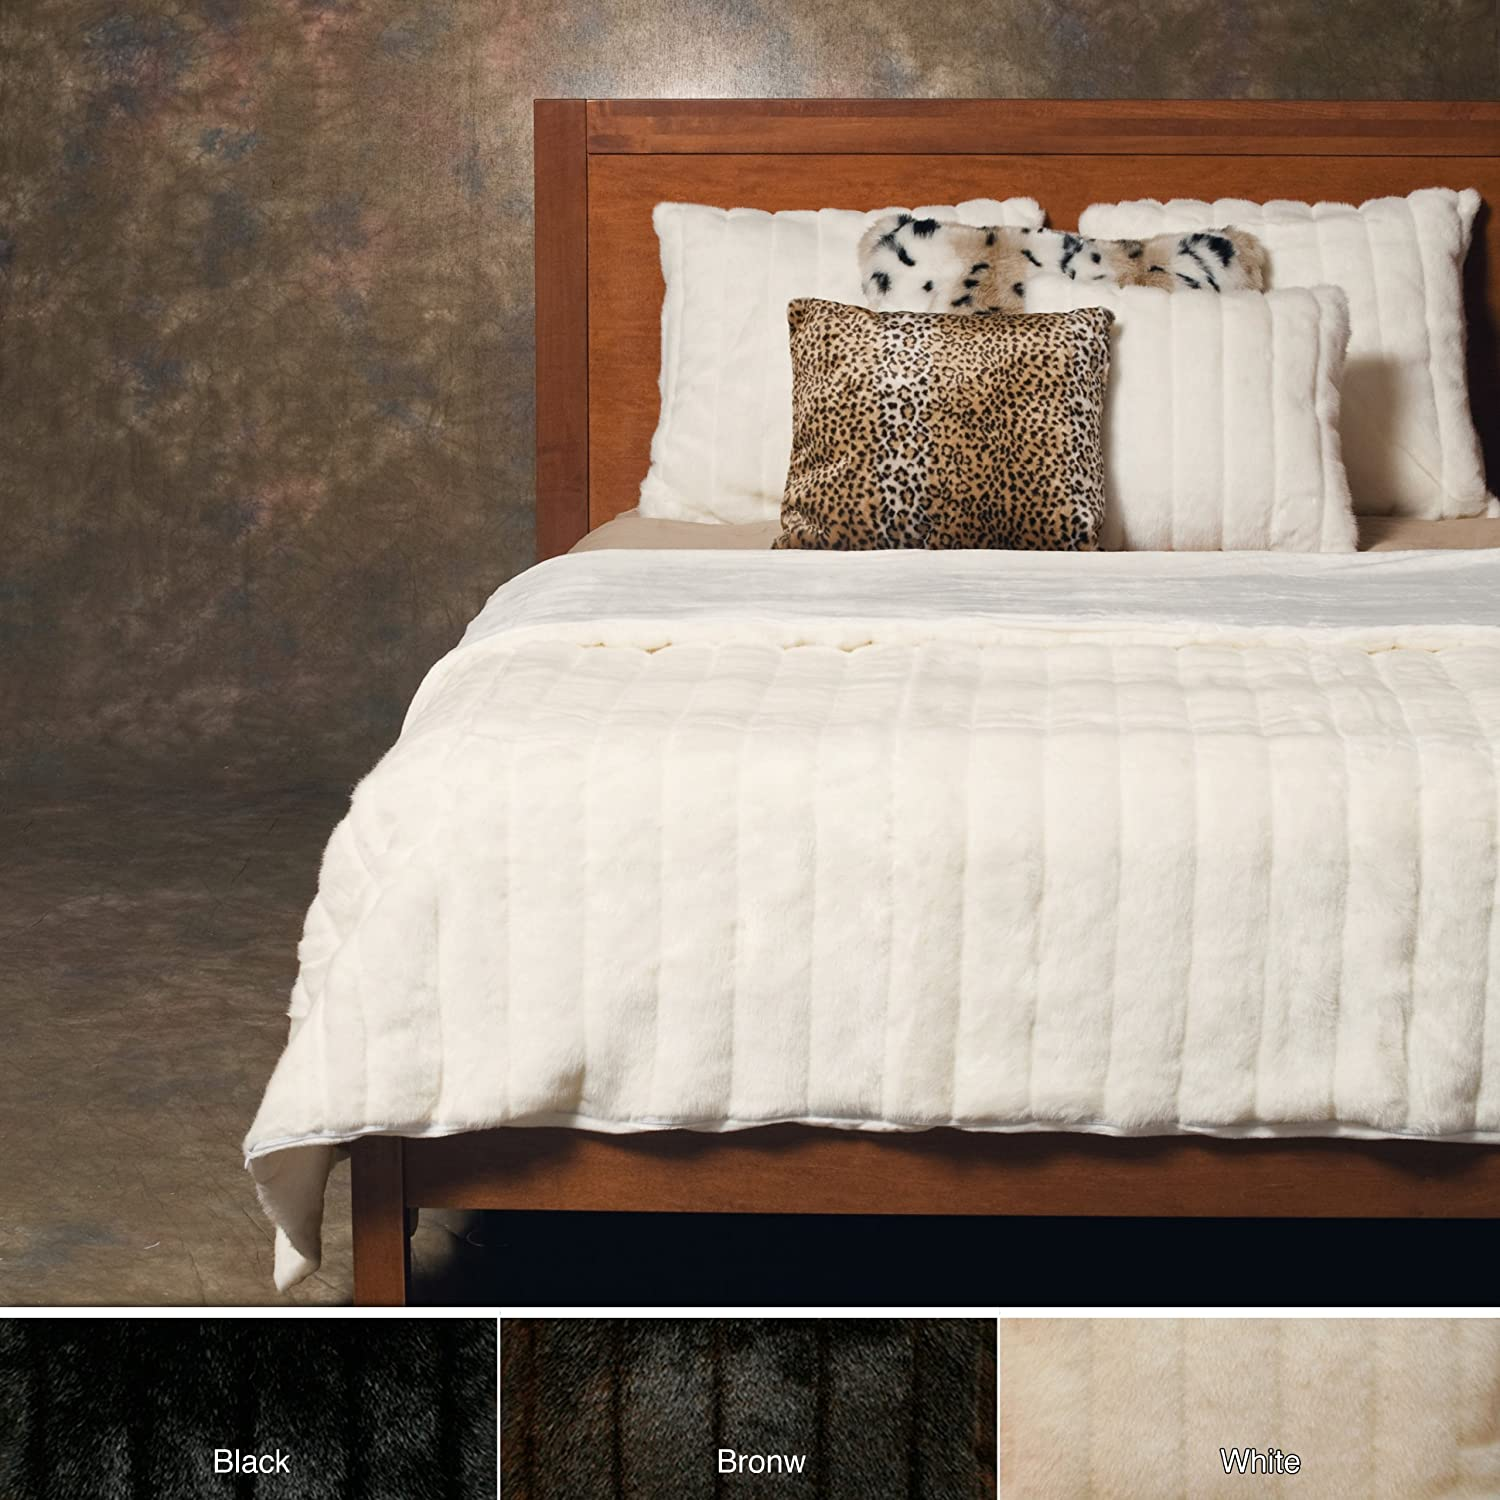 blanket black gray cashmere stole chinchilla yard taupe the faux fake fabric by fur pillow comforter bedspread throw